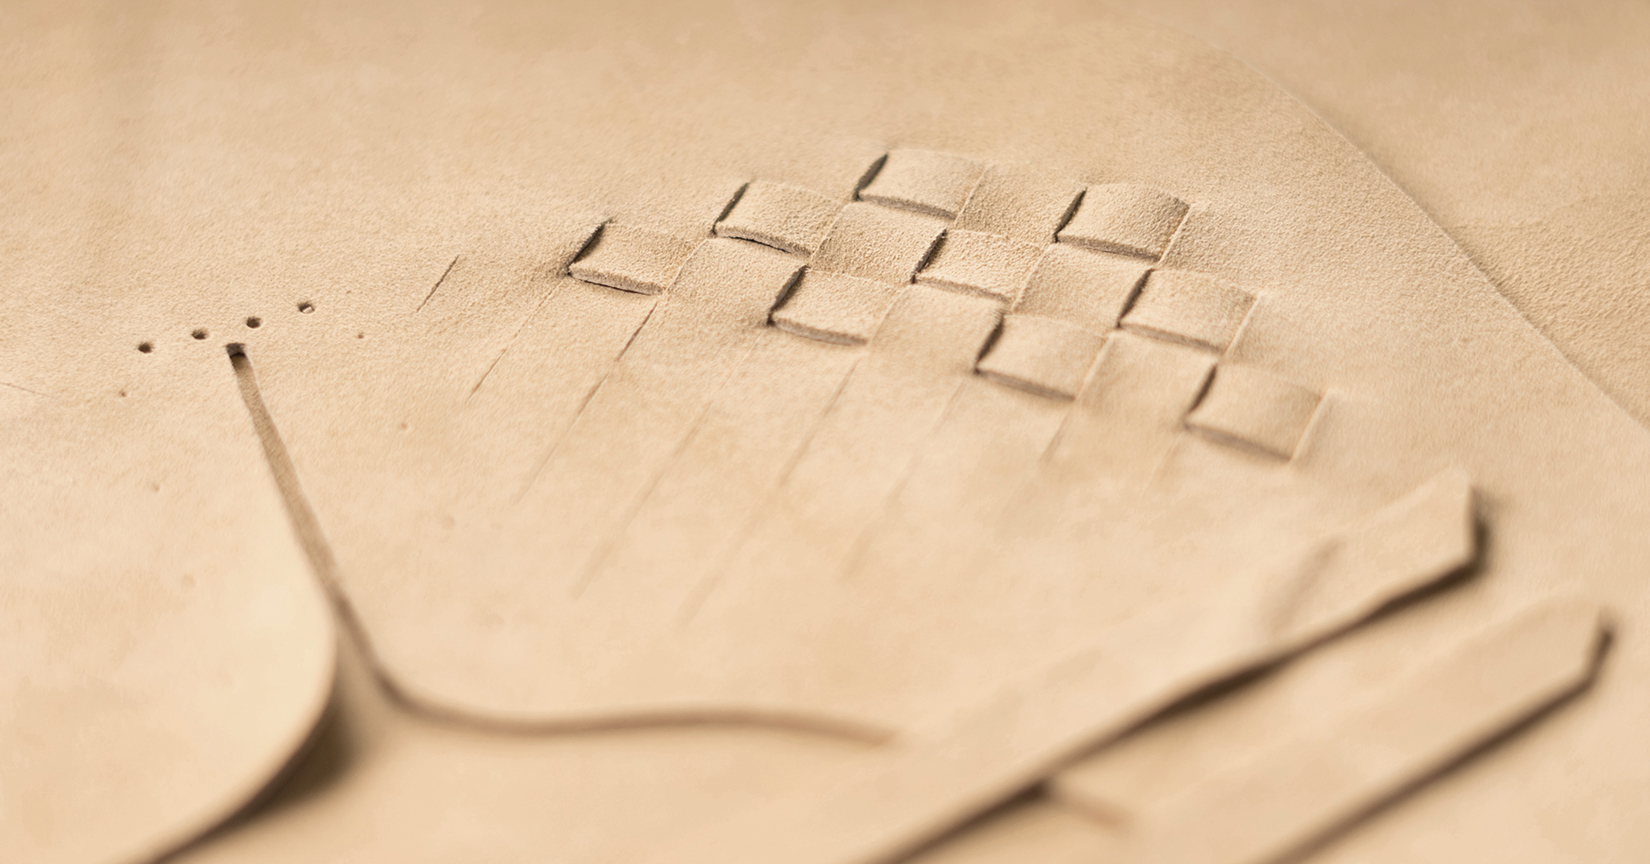 Craftsmanship and know-how: Hand braided leather